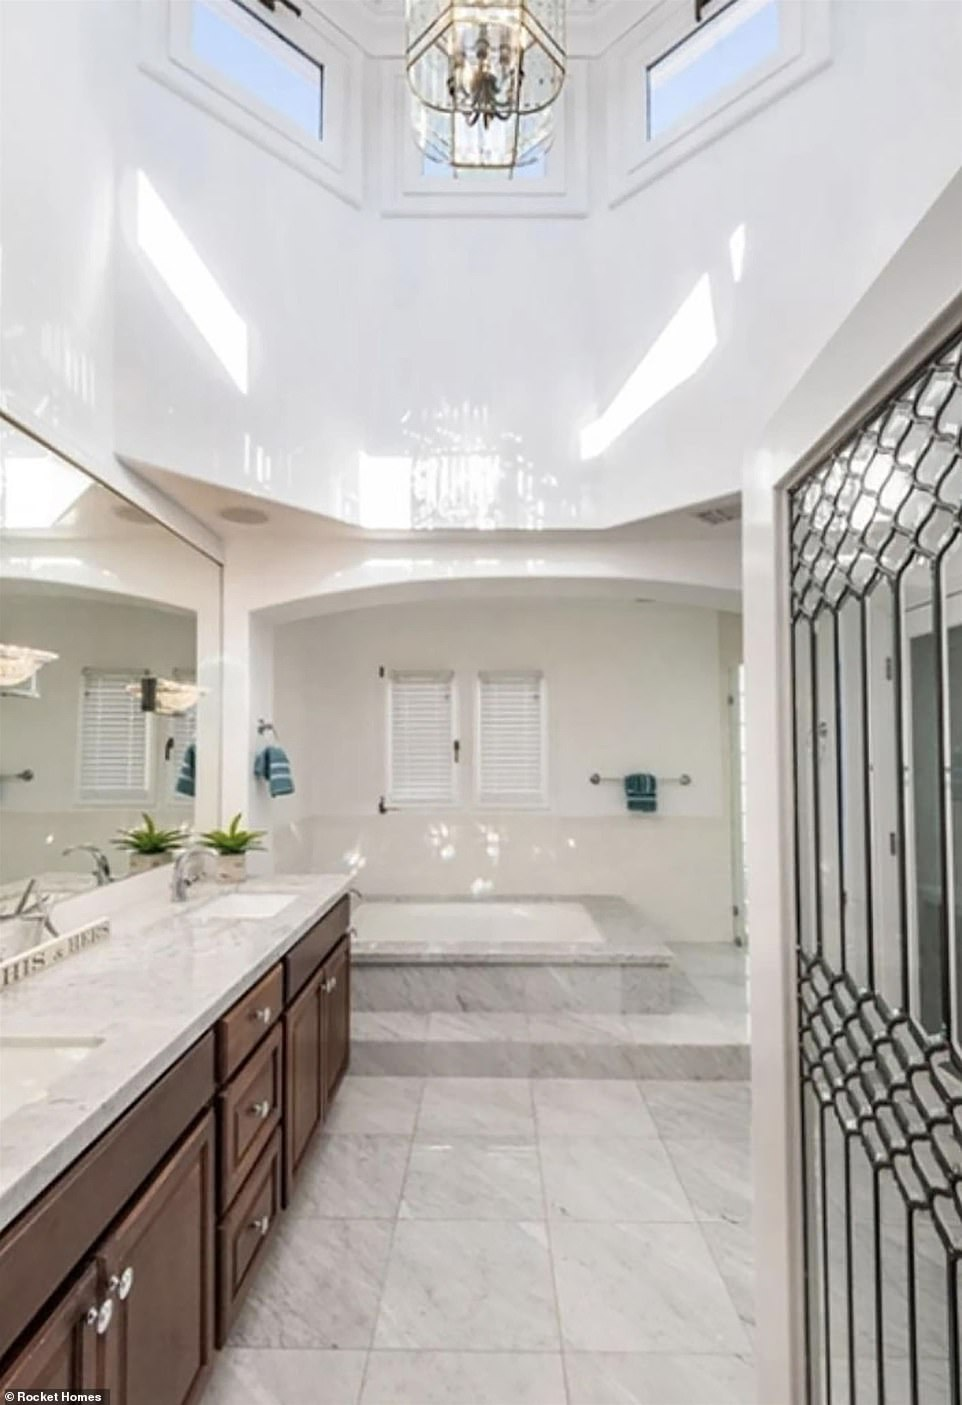 The bathroom in the master bedroom includes a marble floor with tub and clerestory windows allowing for natural light